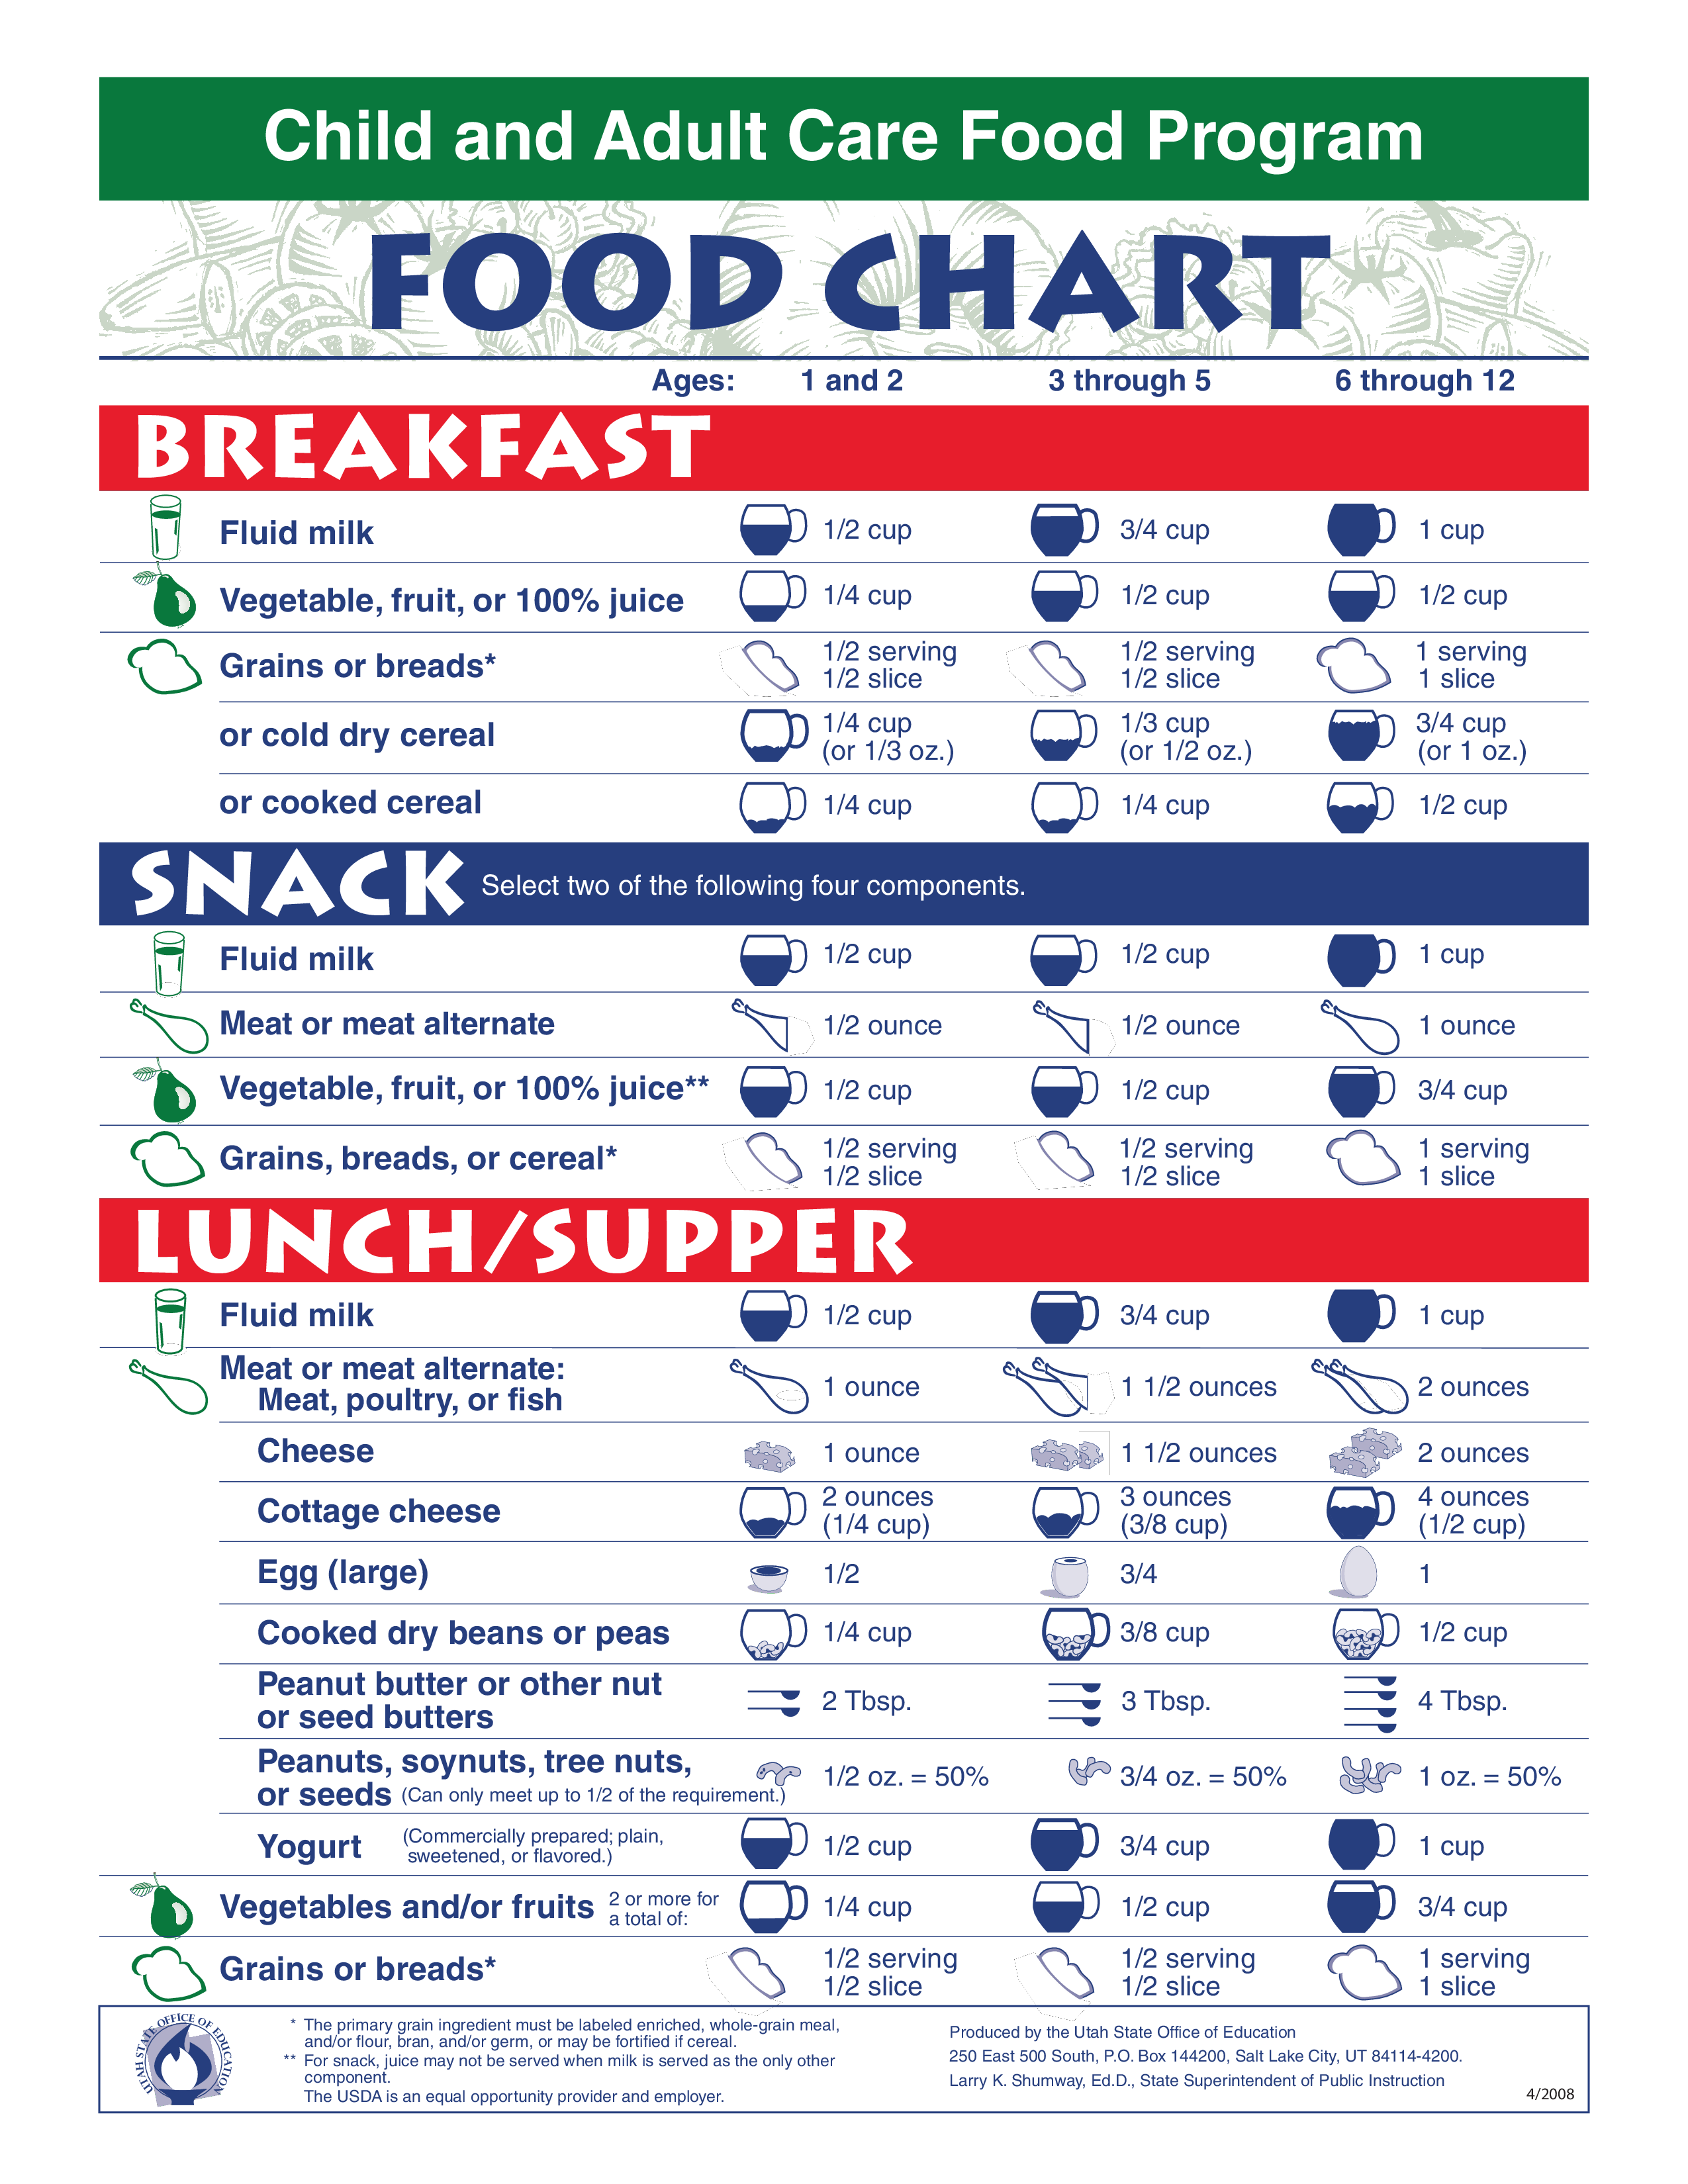 Child and Adult Food Program Chart main image